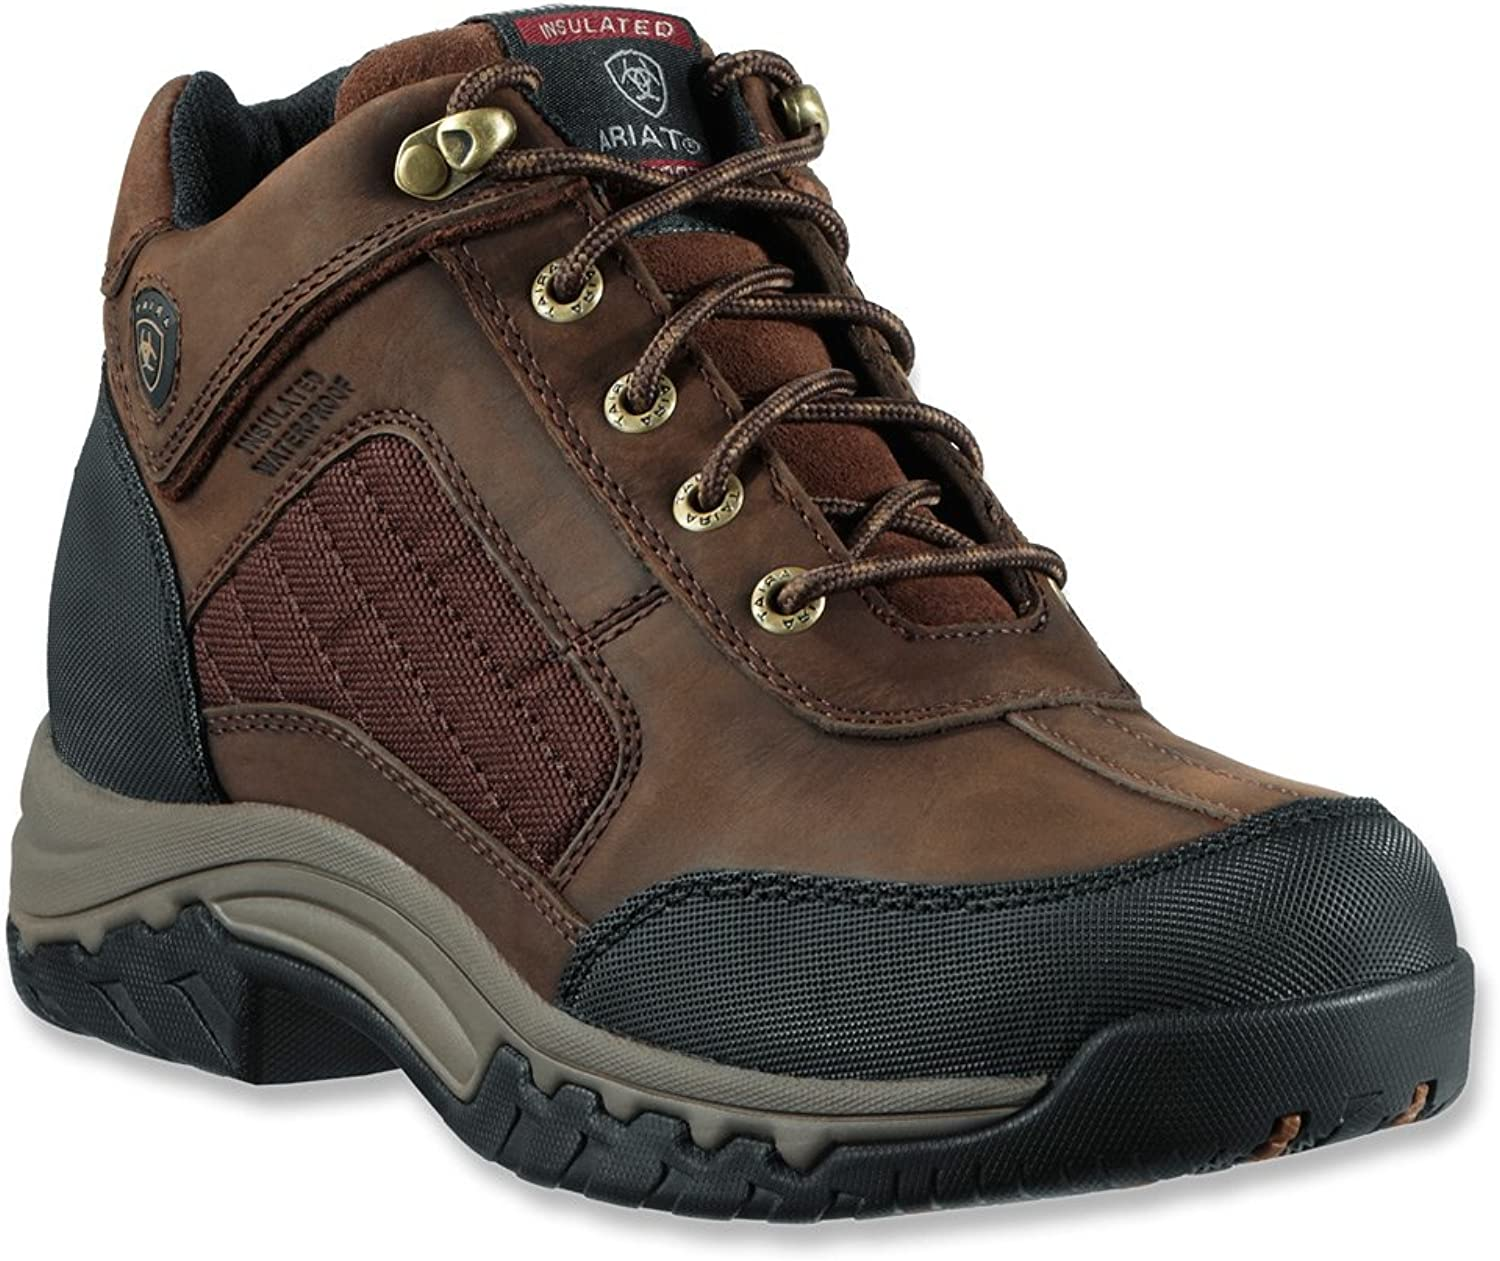 Ariat Ladies' Campink H2o Insulated Boot